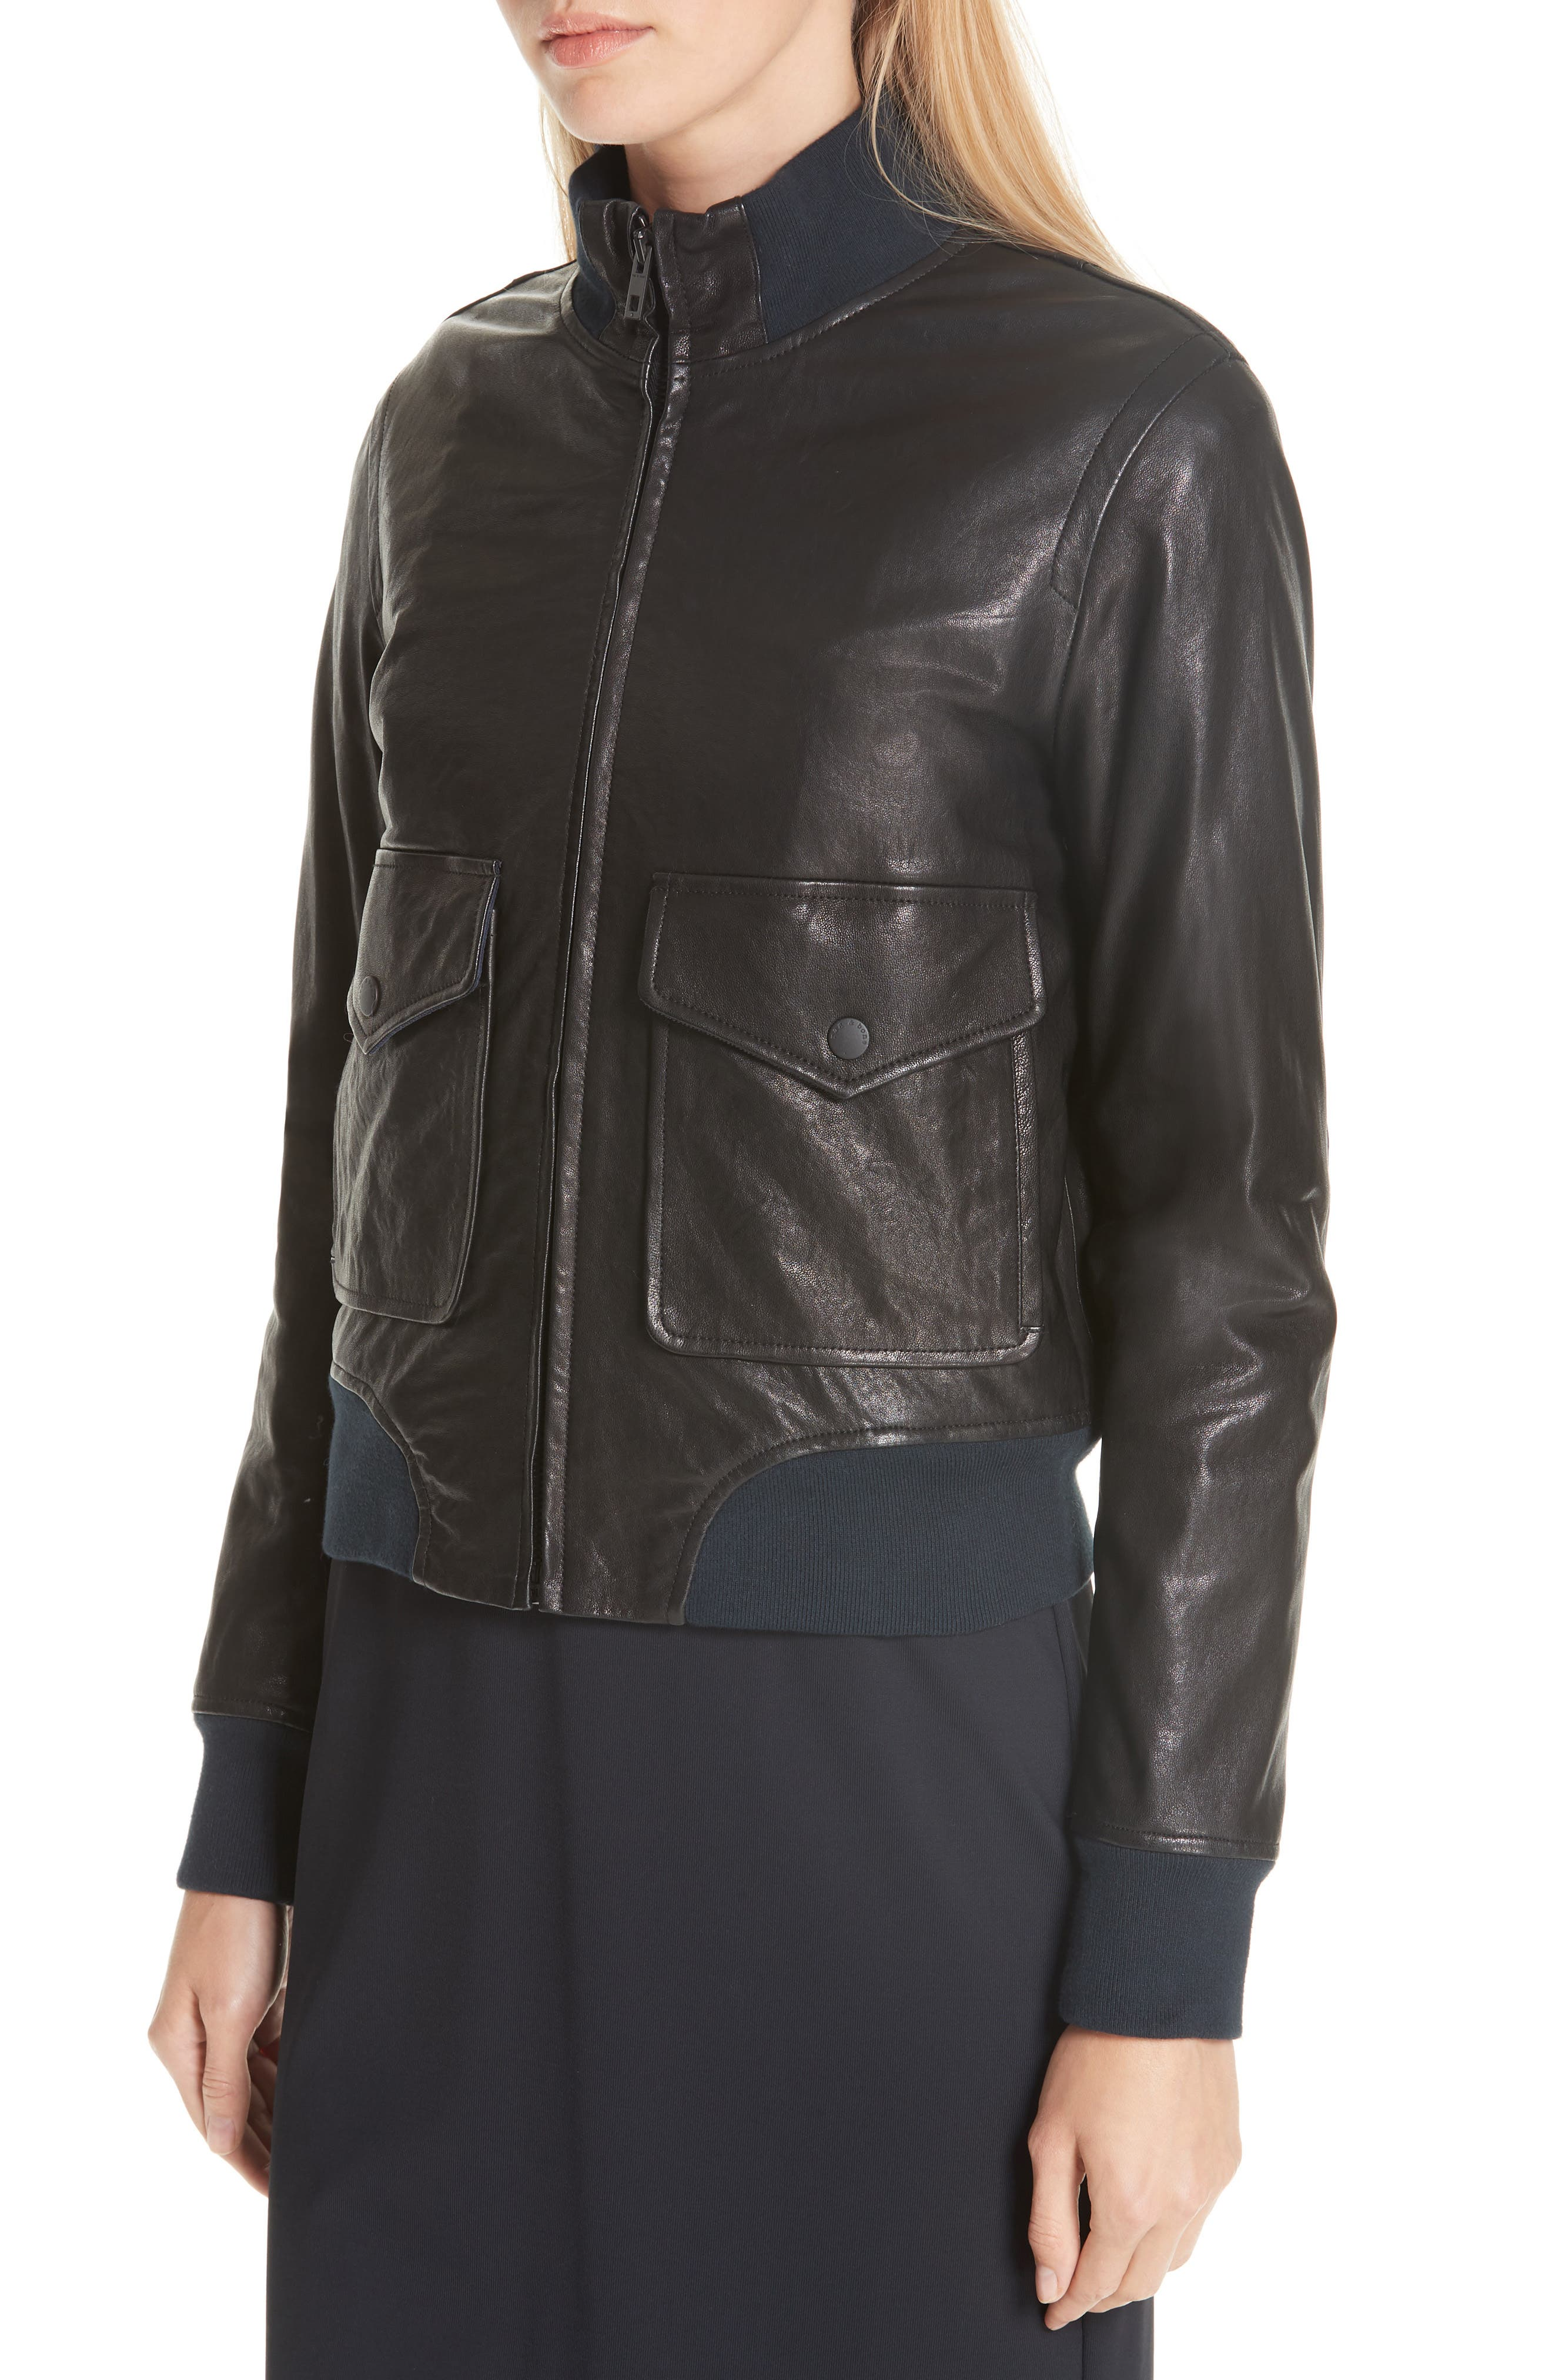 Mila Lambskin Leather Jacket,                             Alternate thumbnail 4, color,                             001